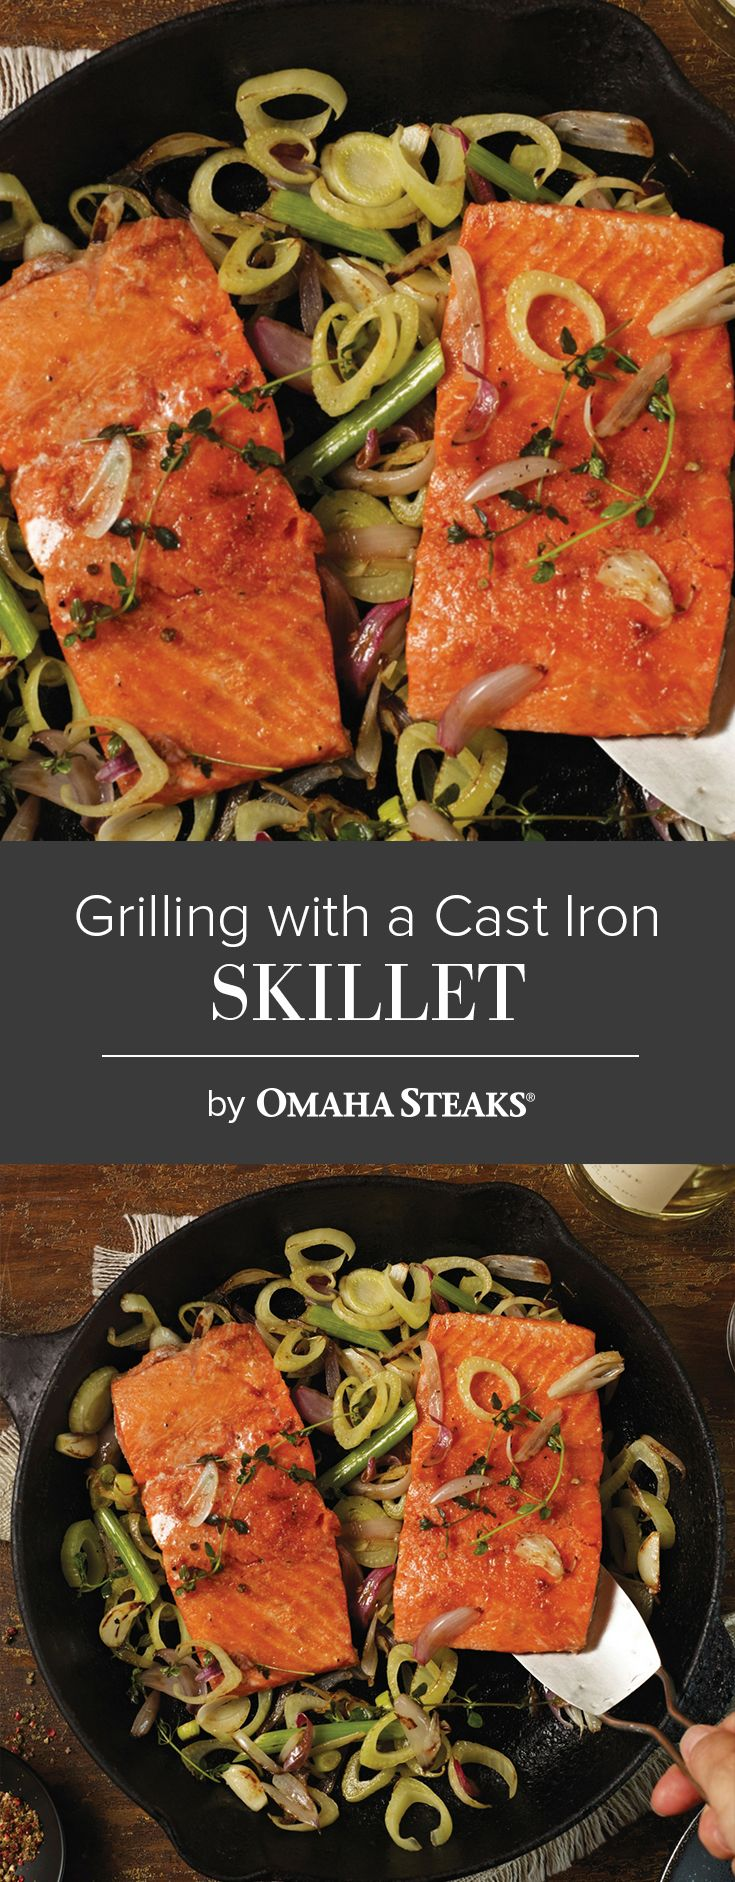 Grilling With a Cast Iron Skillet